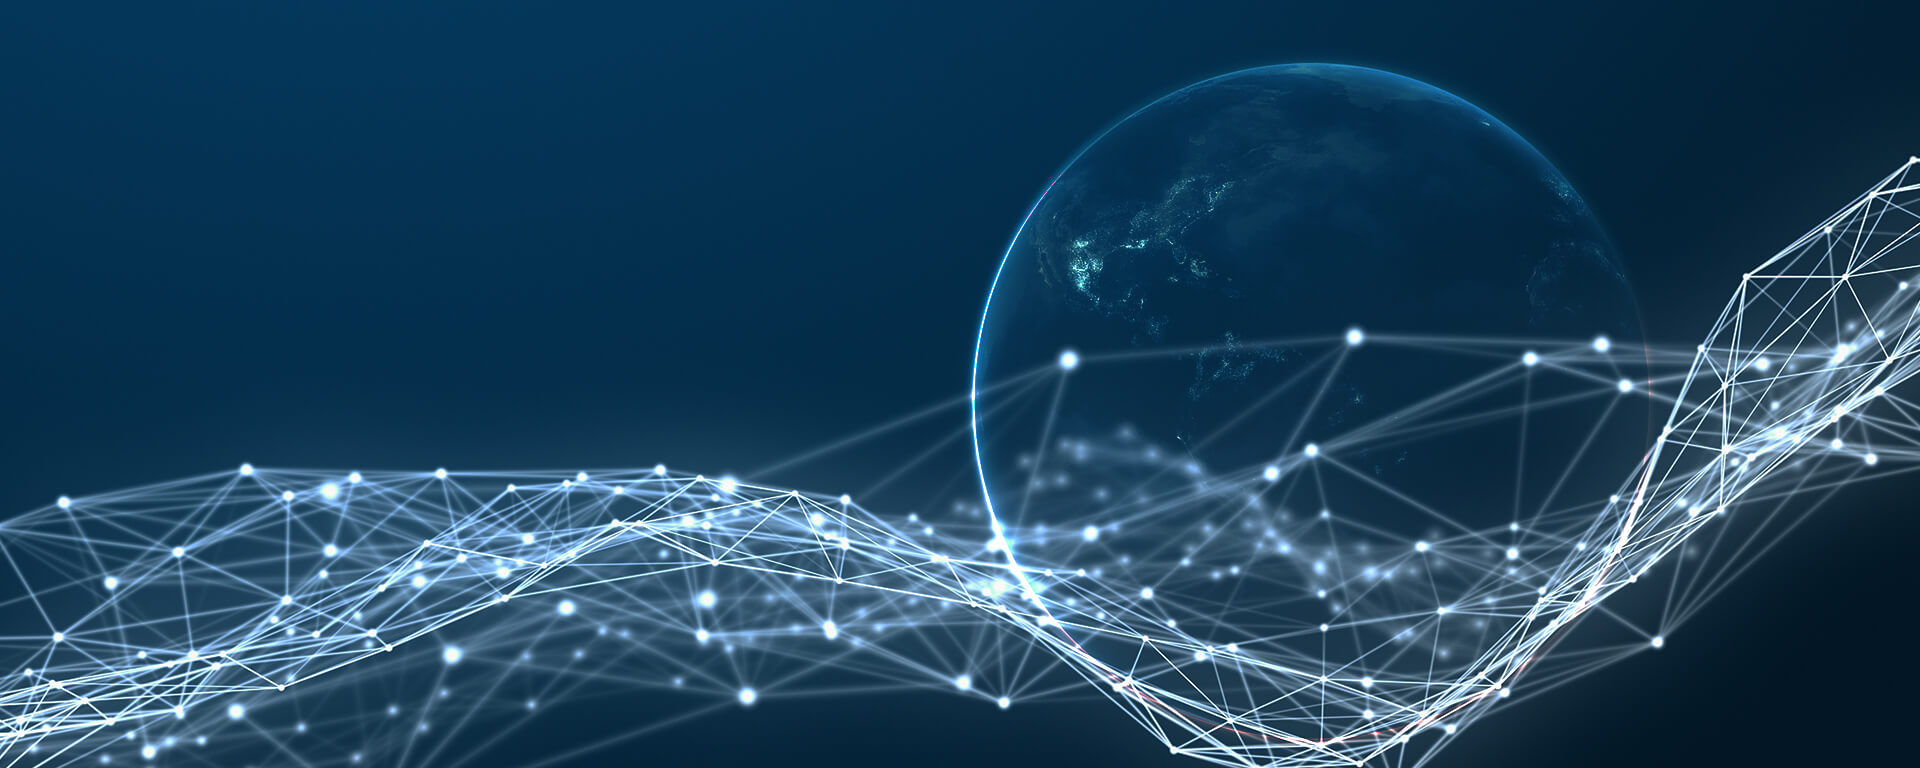 Assuring the smooth transition to NFV with innovative technology